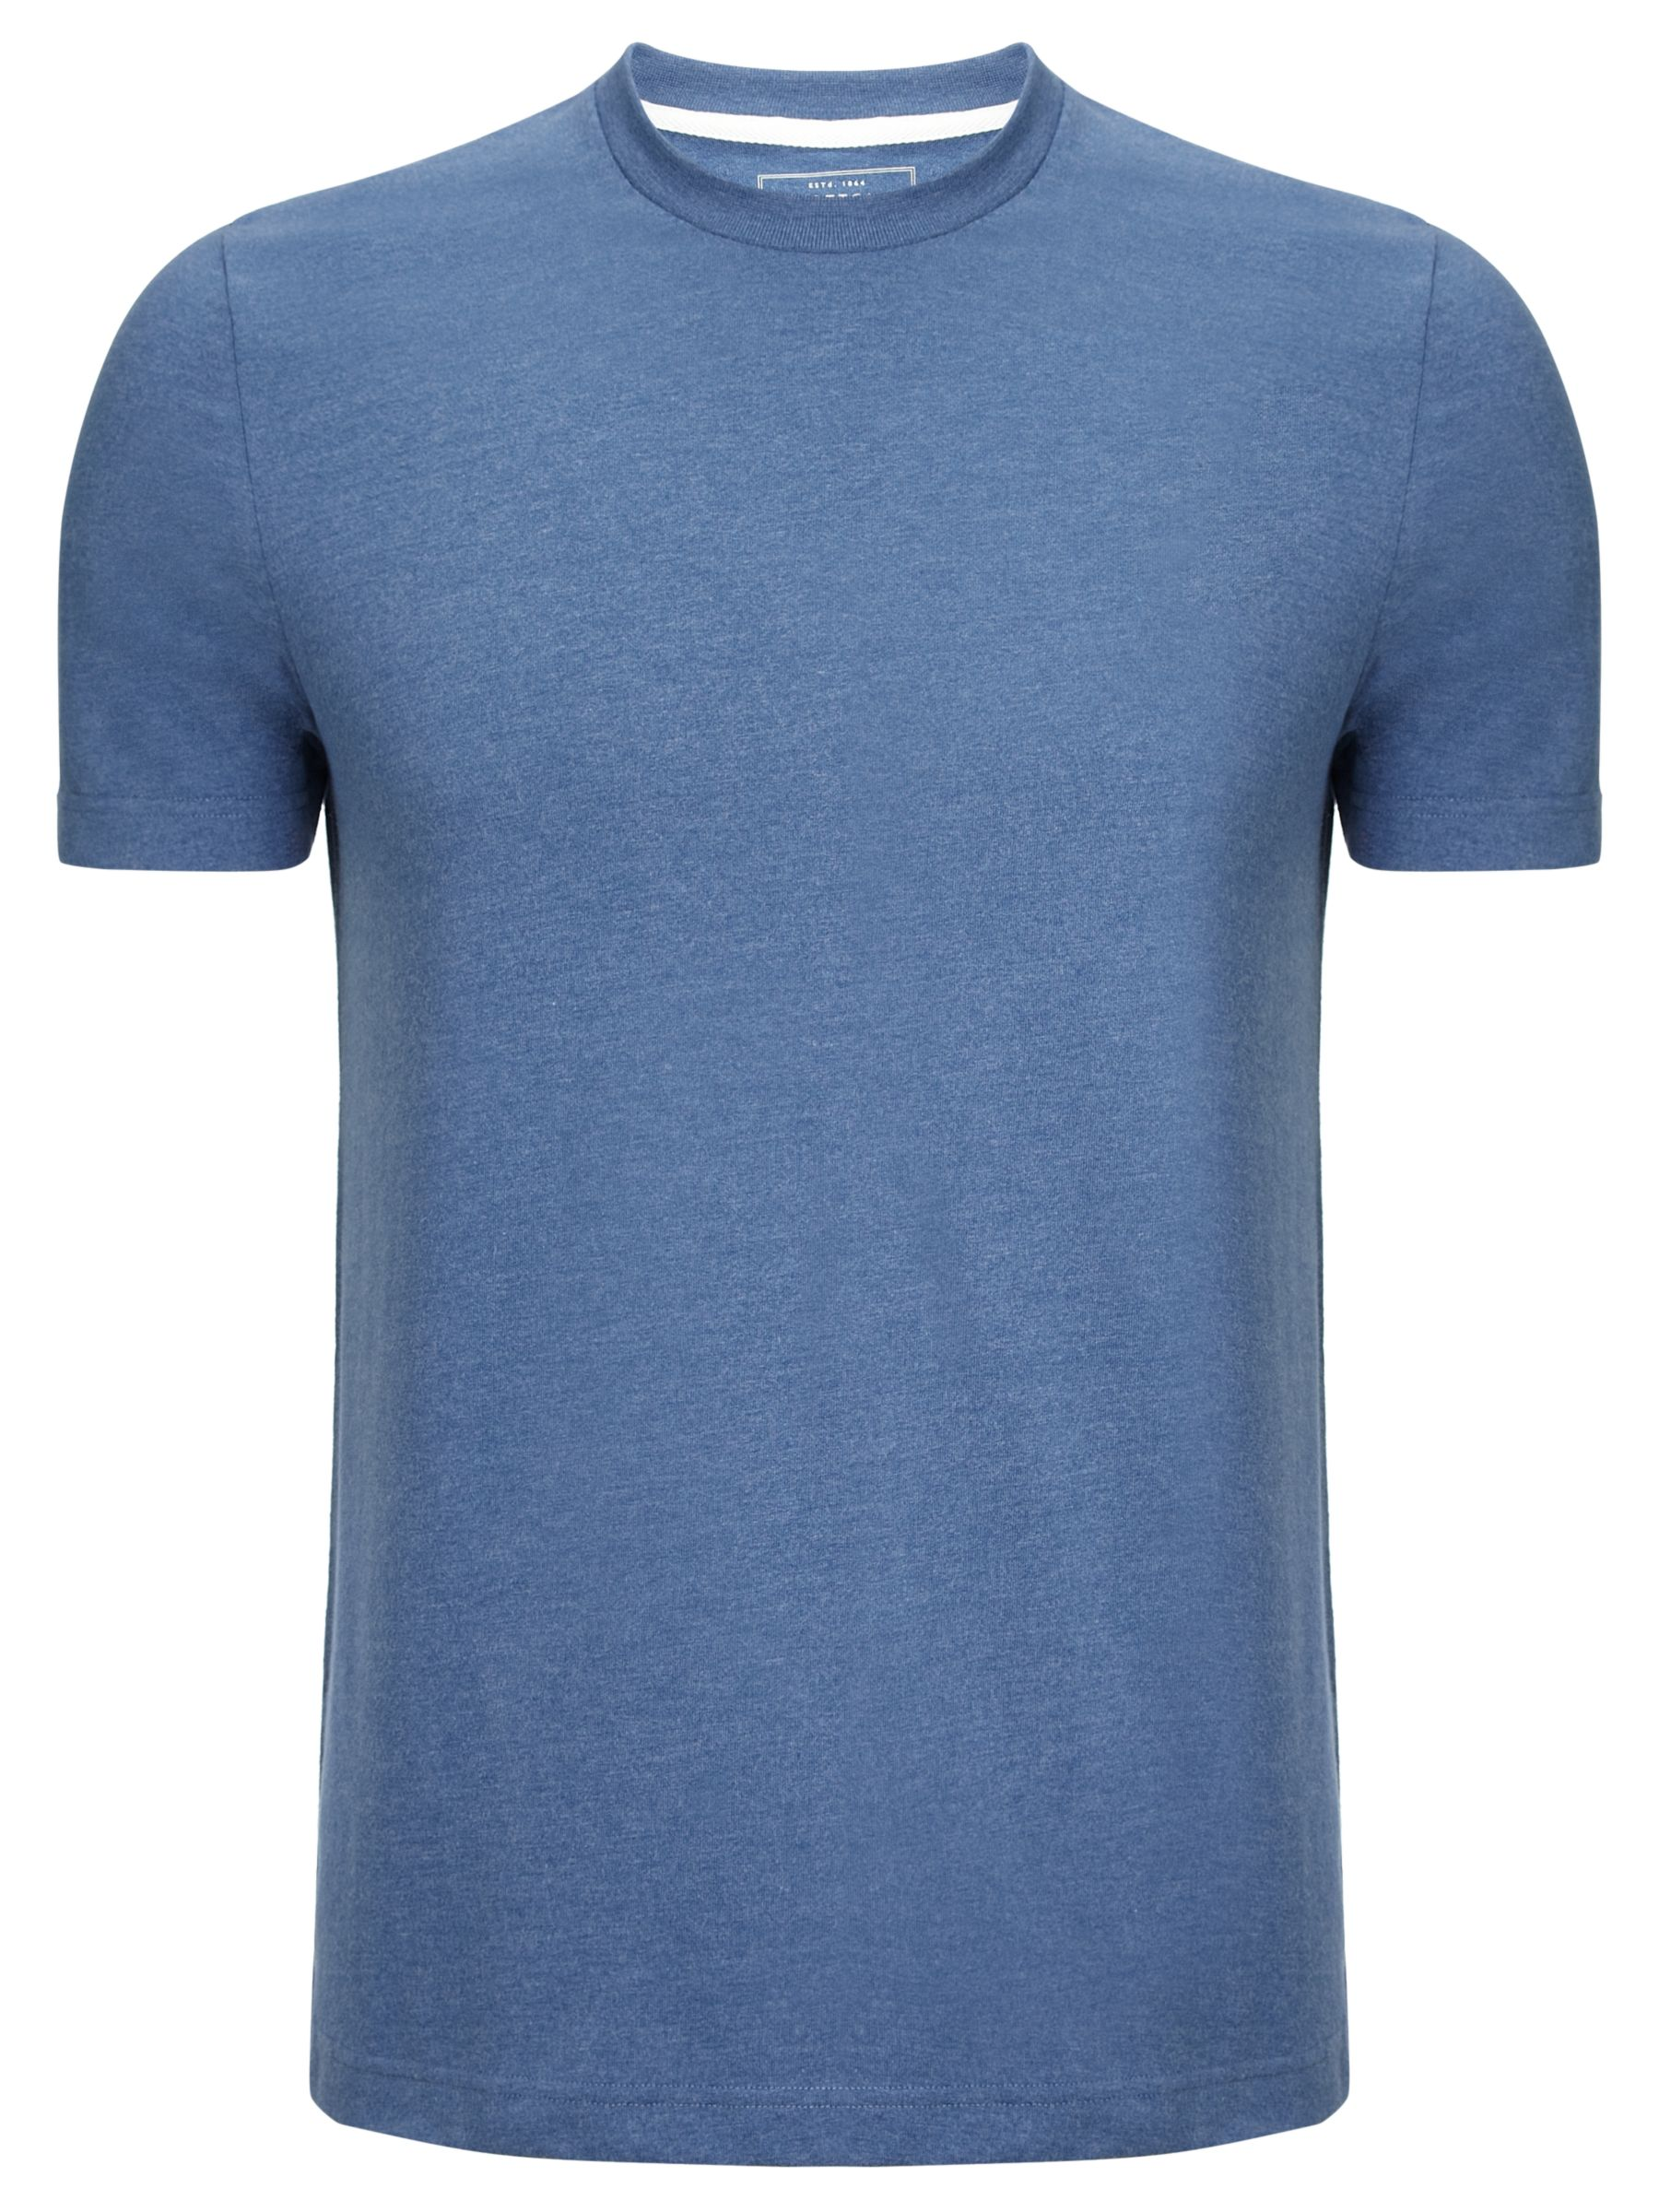 John Lewis Crew Neck Cotton T-Shirt